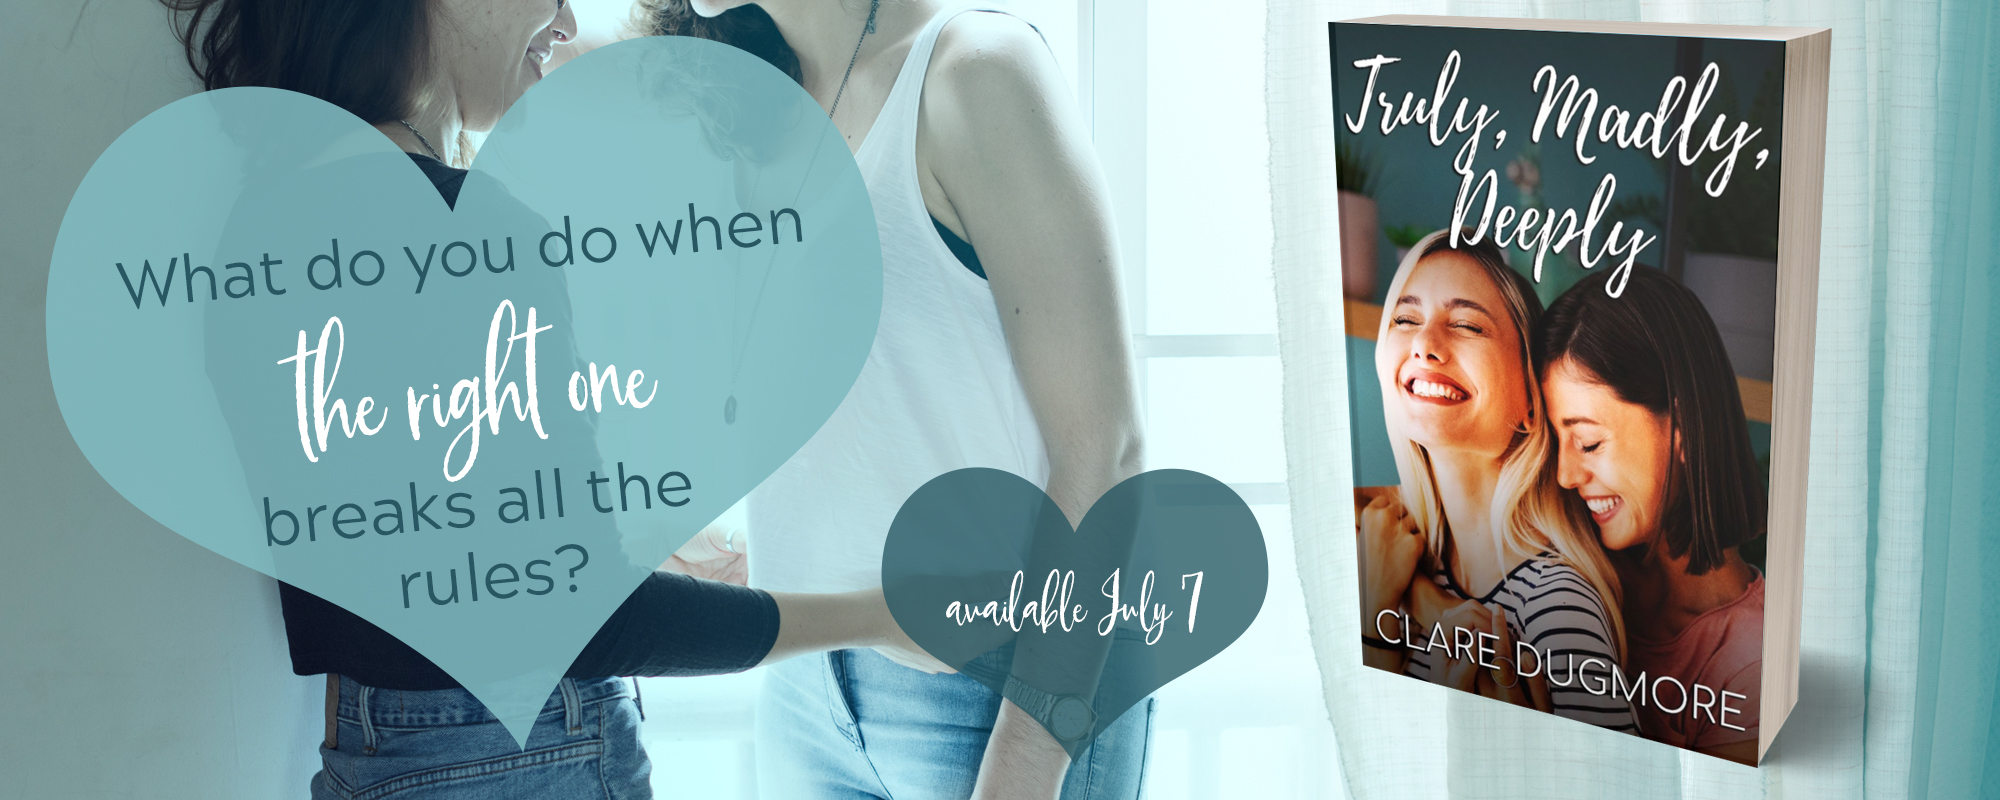 Truly, Madly, Deeply by Clare Dugmore, coming soon